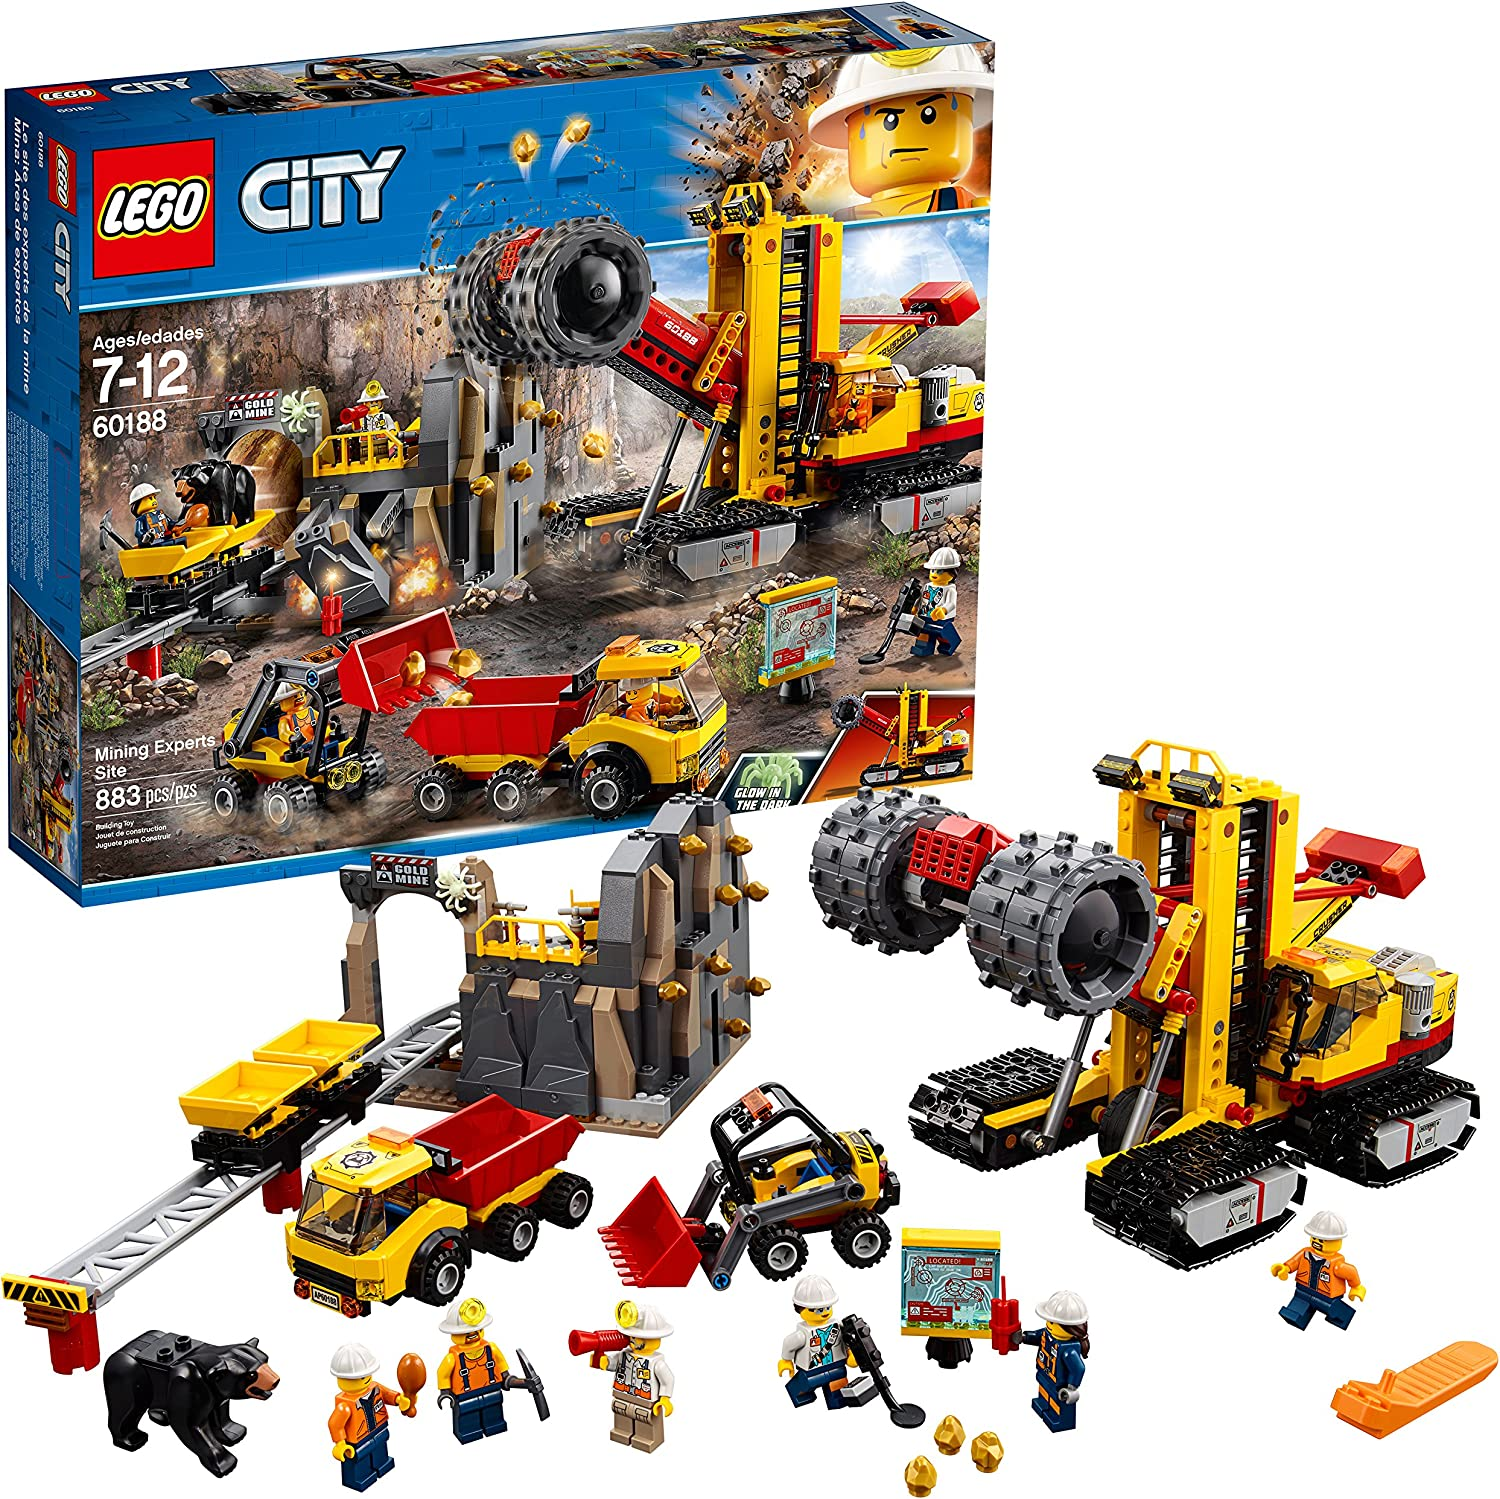 LEGO City Mining Experts Site 60188 Building Kit (883 Piece)